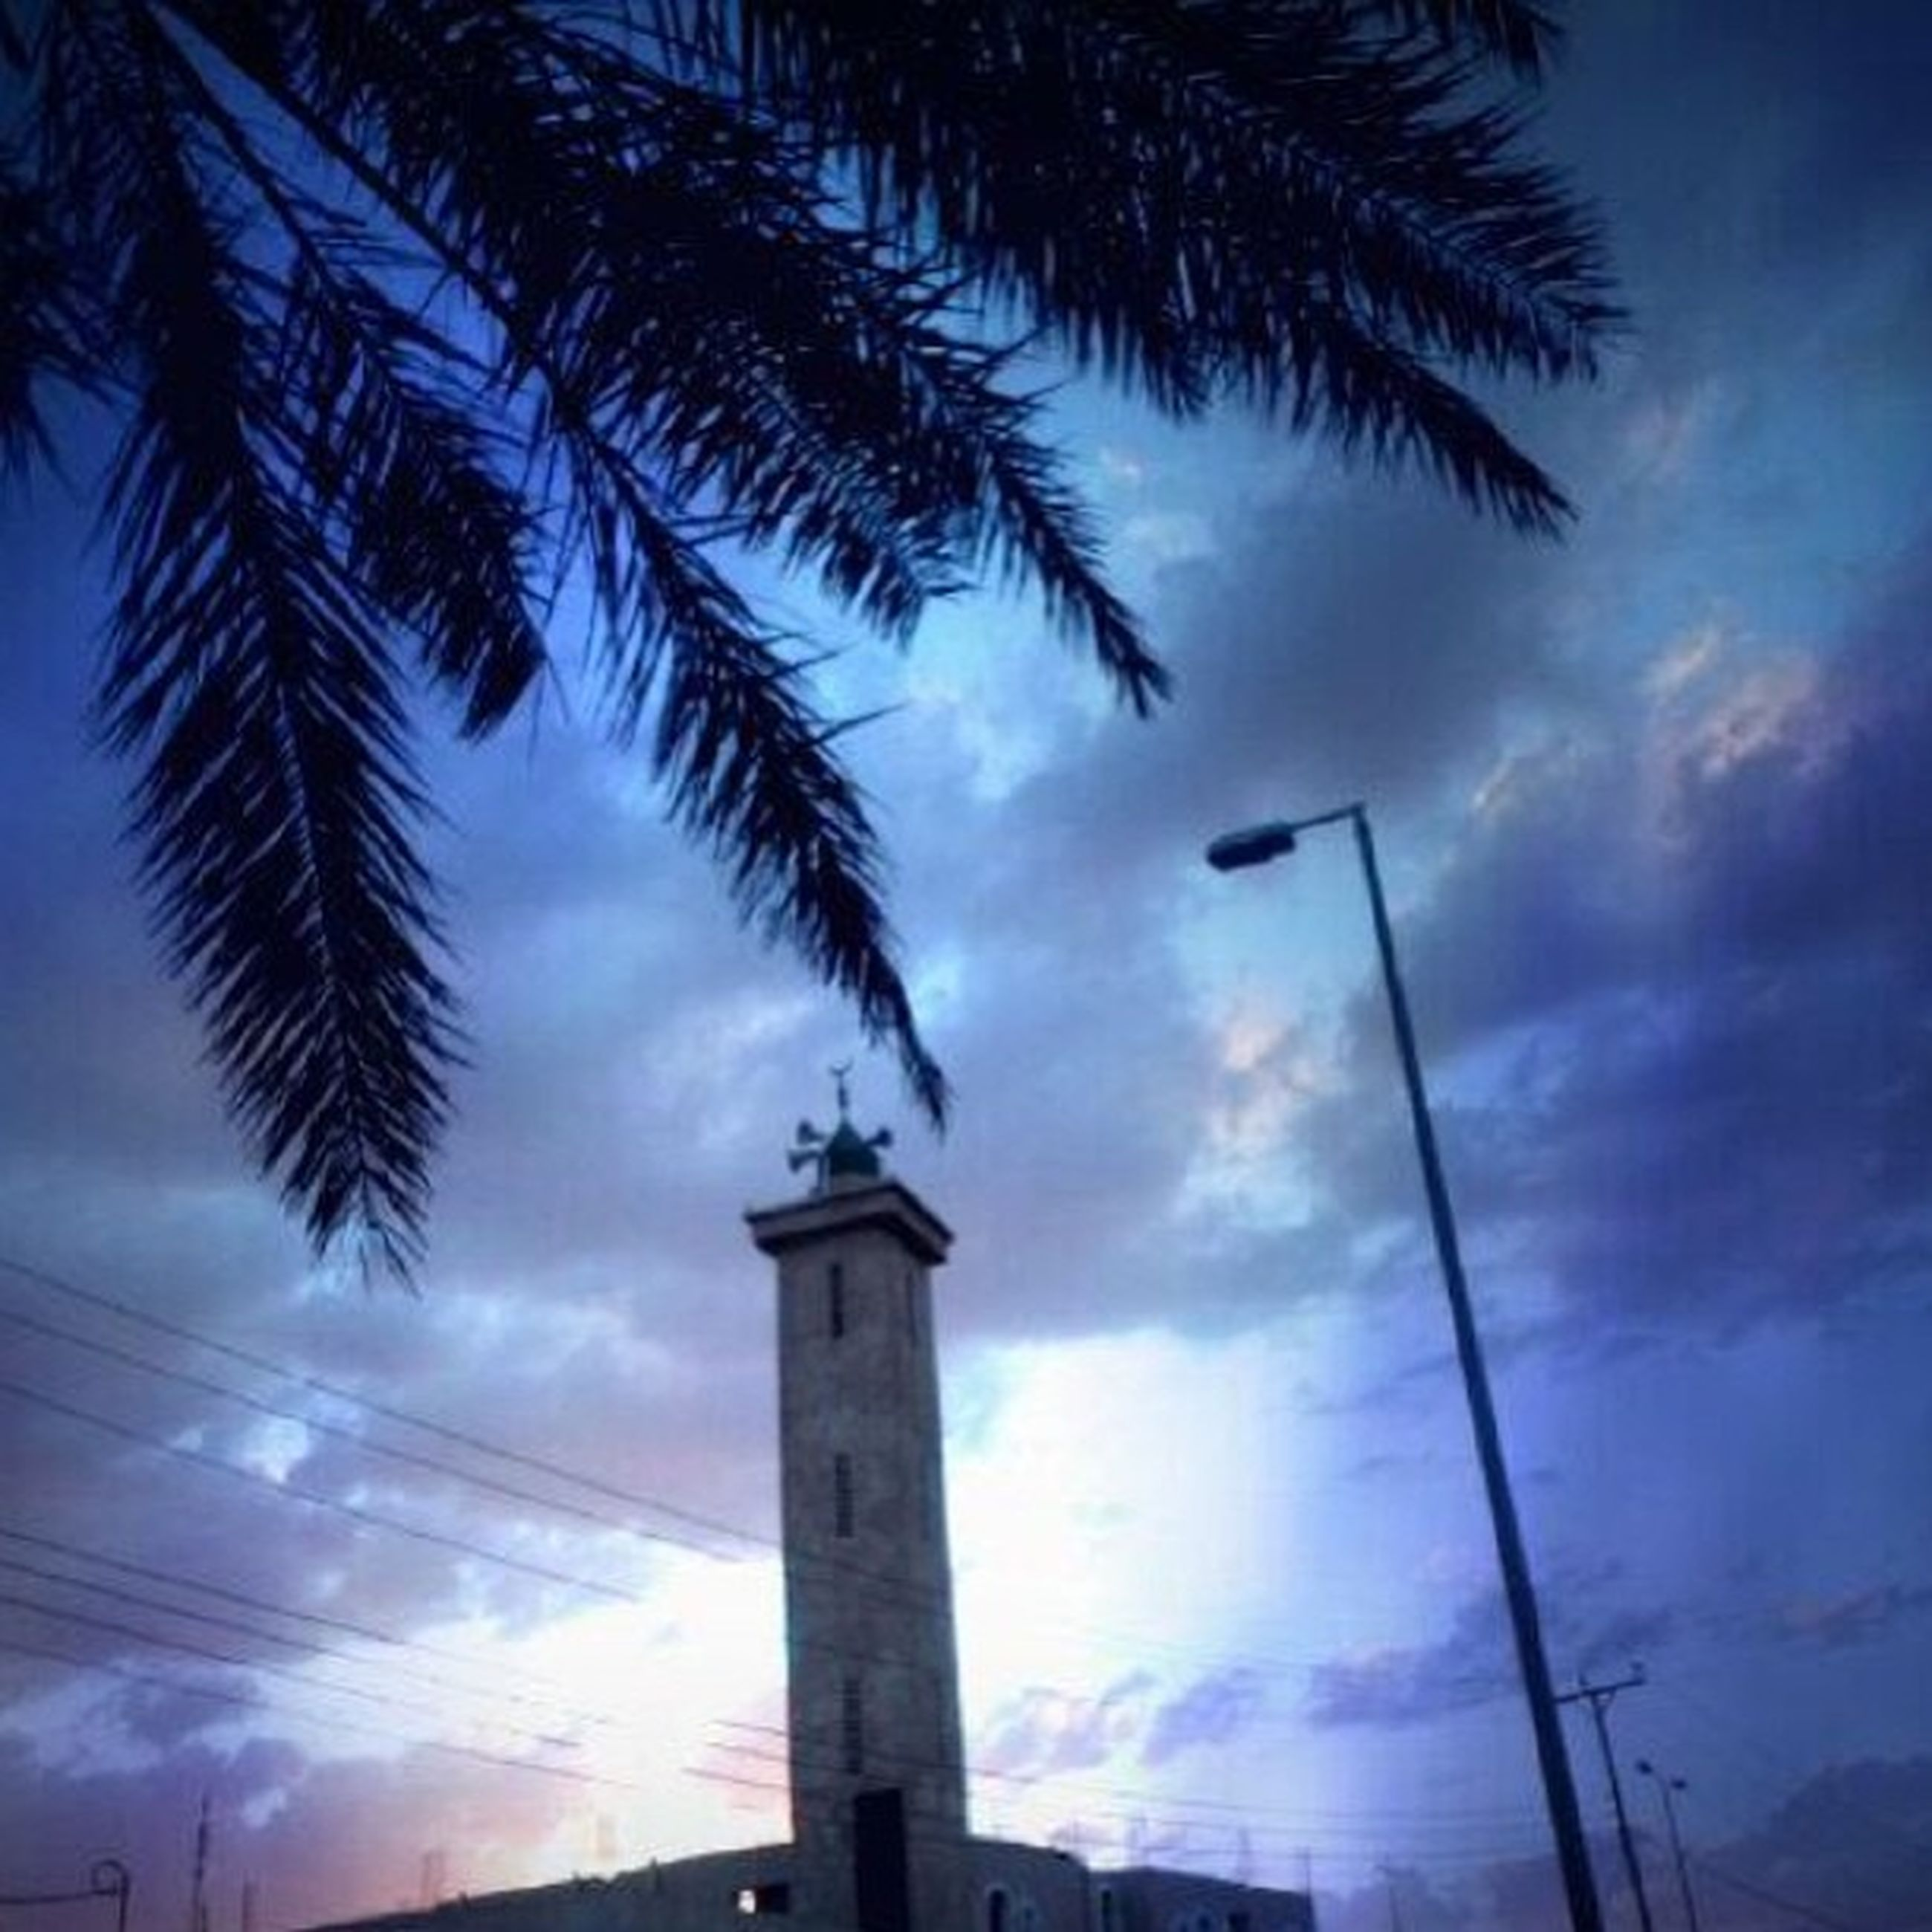 low angle view, sky, cloud - sky, built structure, street light, architecture, palm tree, cloudy, tree, cloud, building exterior, silhouette, lighting equipment, tall - high, pole, no people, outdoors, day, tower, dusk